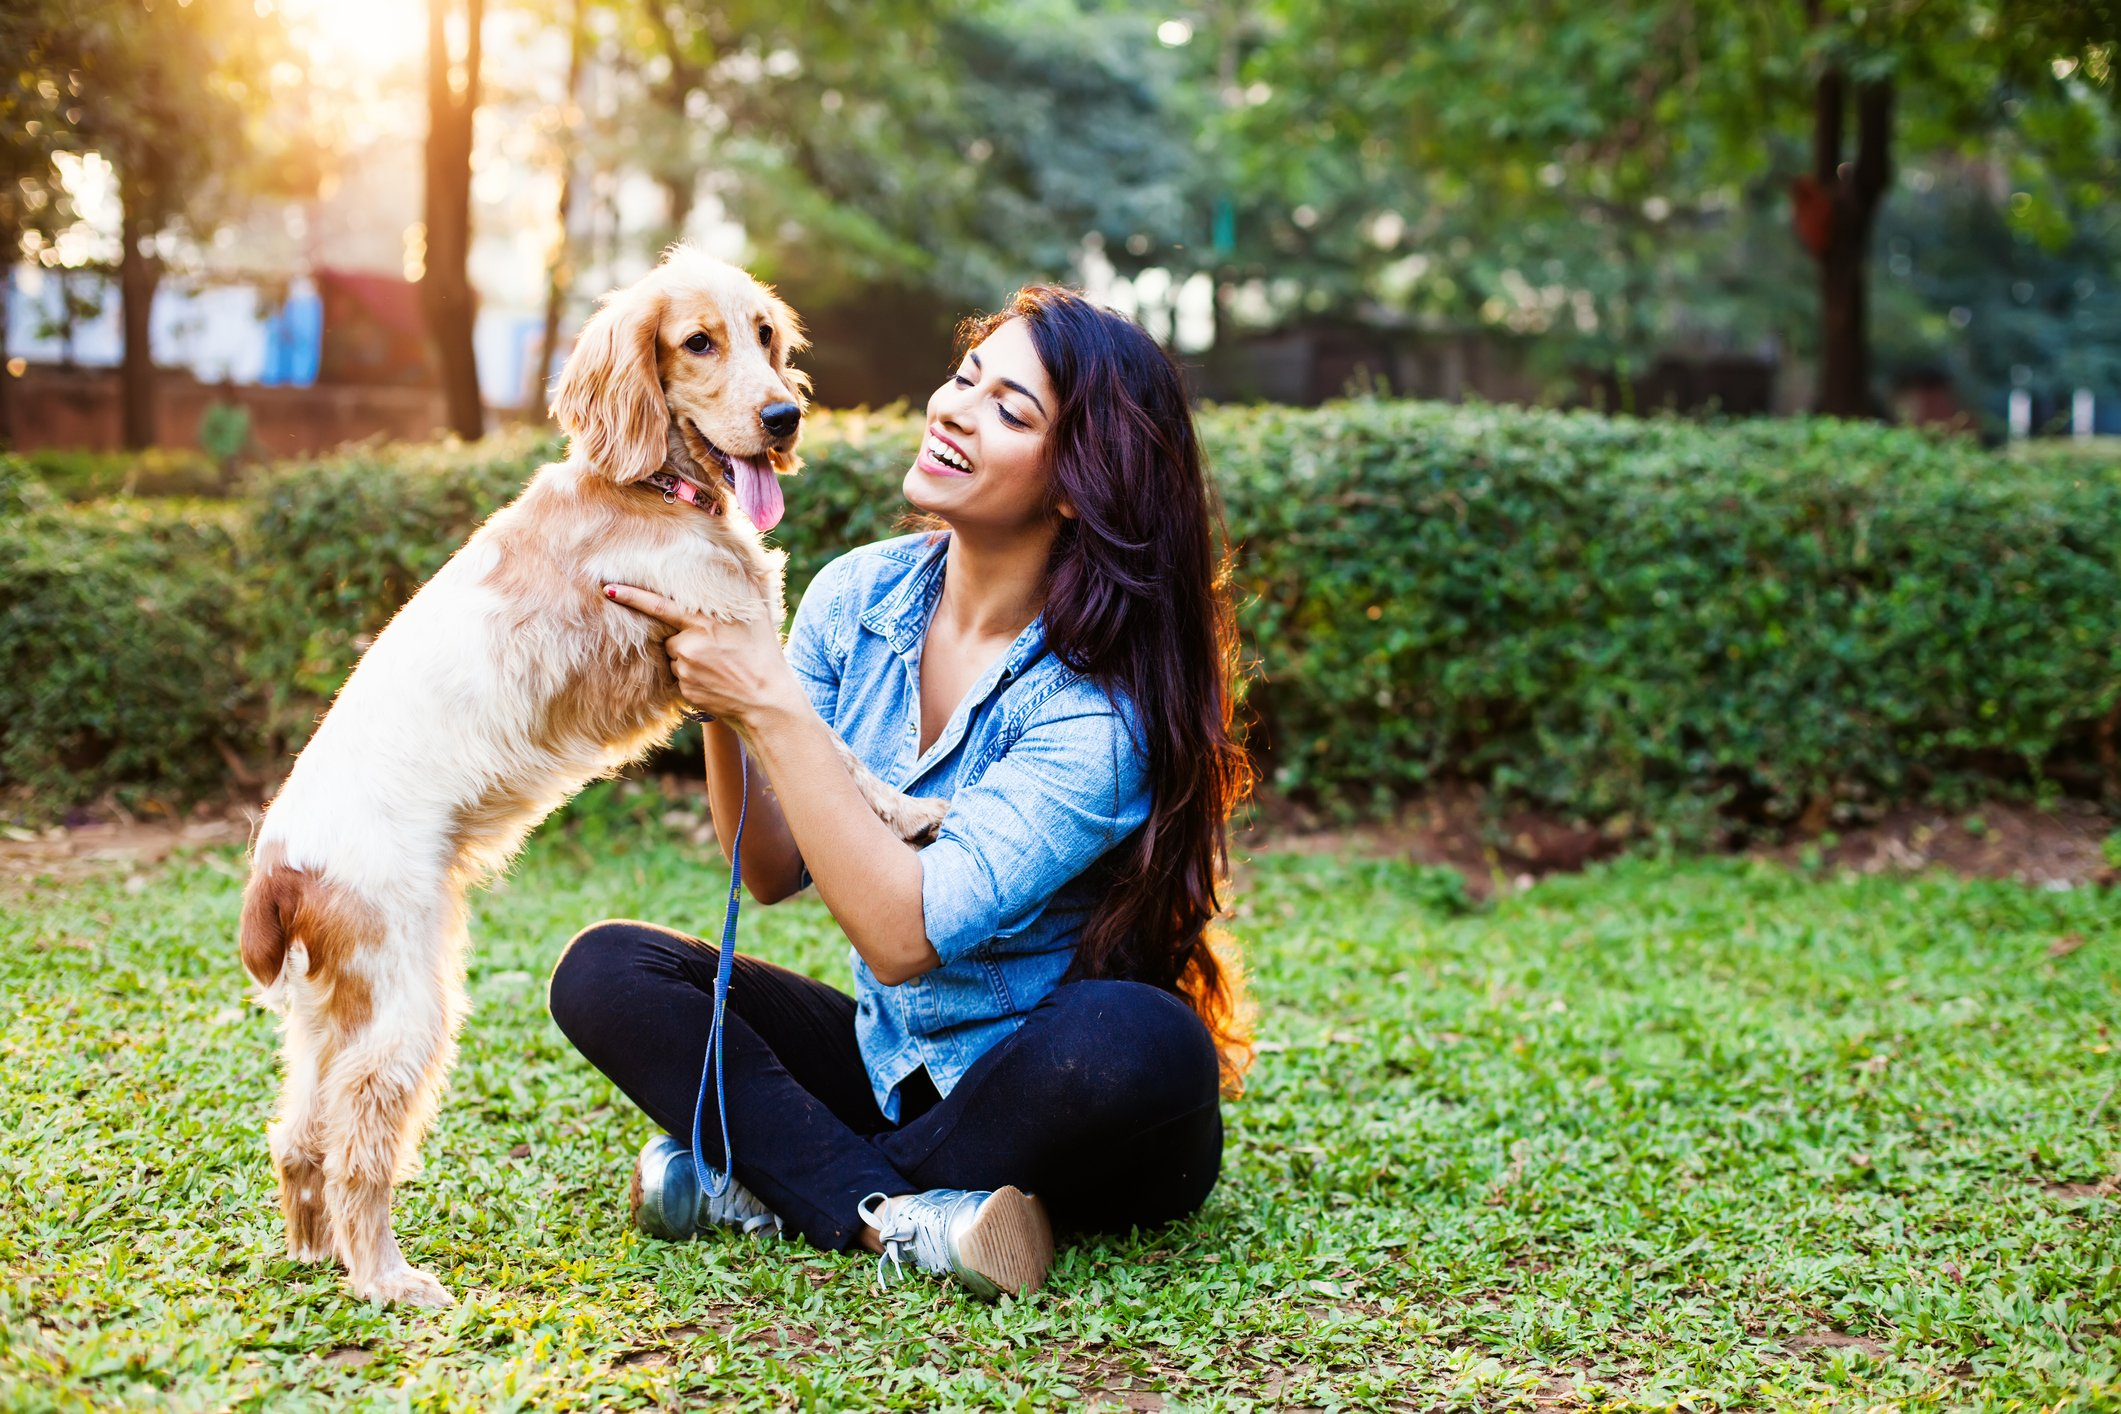 Customers say nothing but Gingr comes close to meeting their pet business software needs.